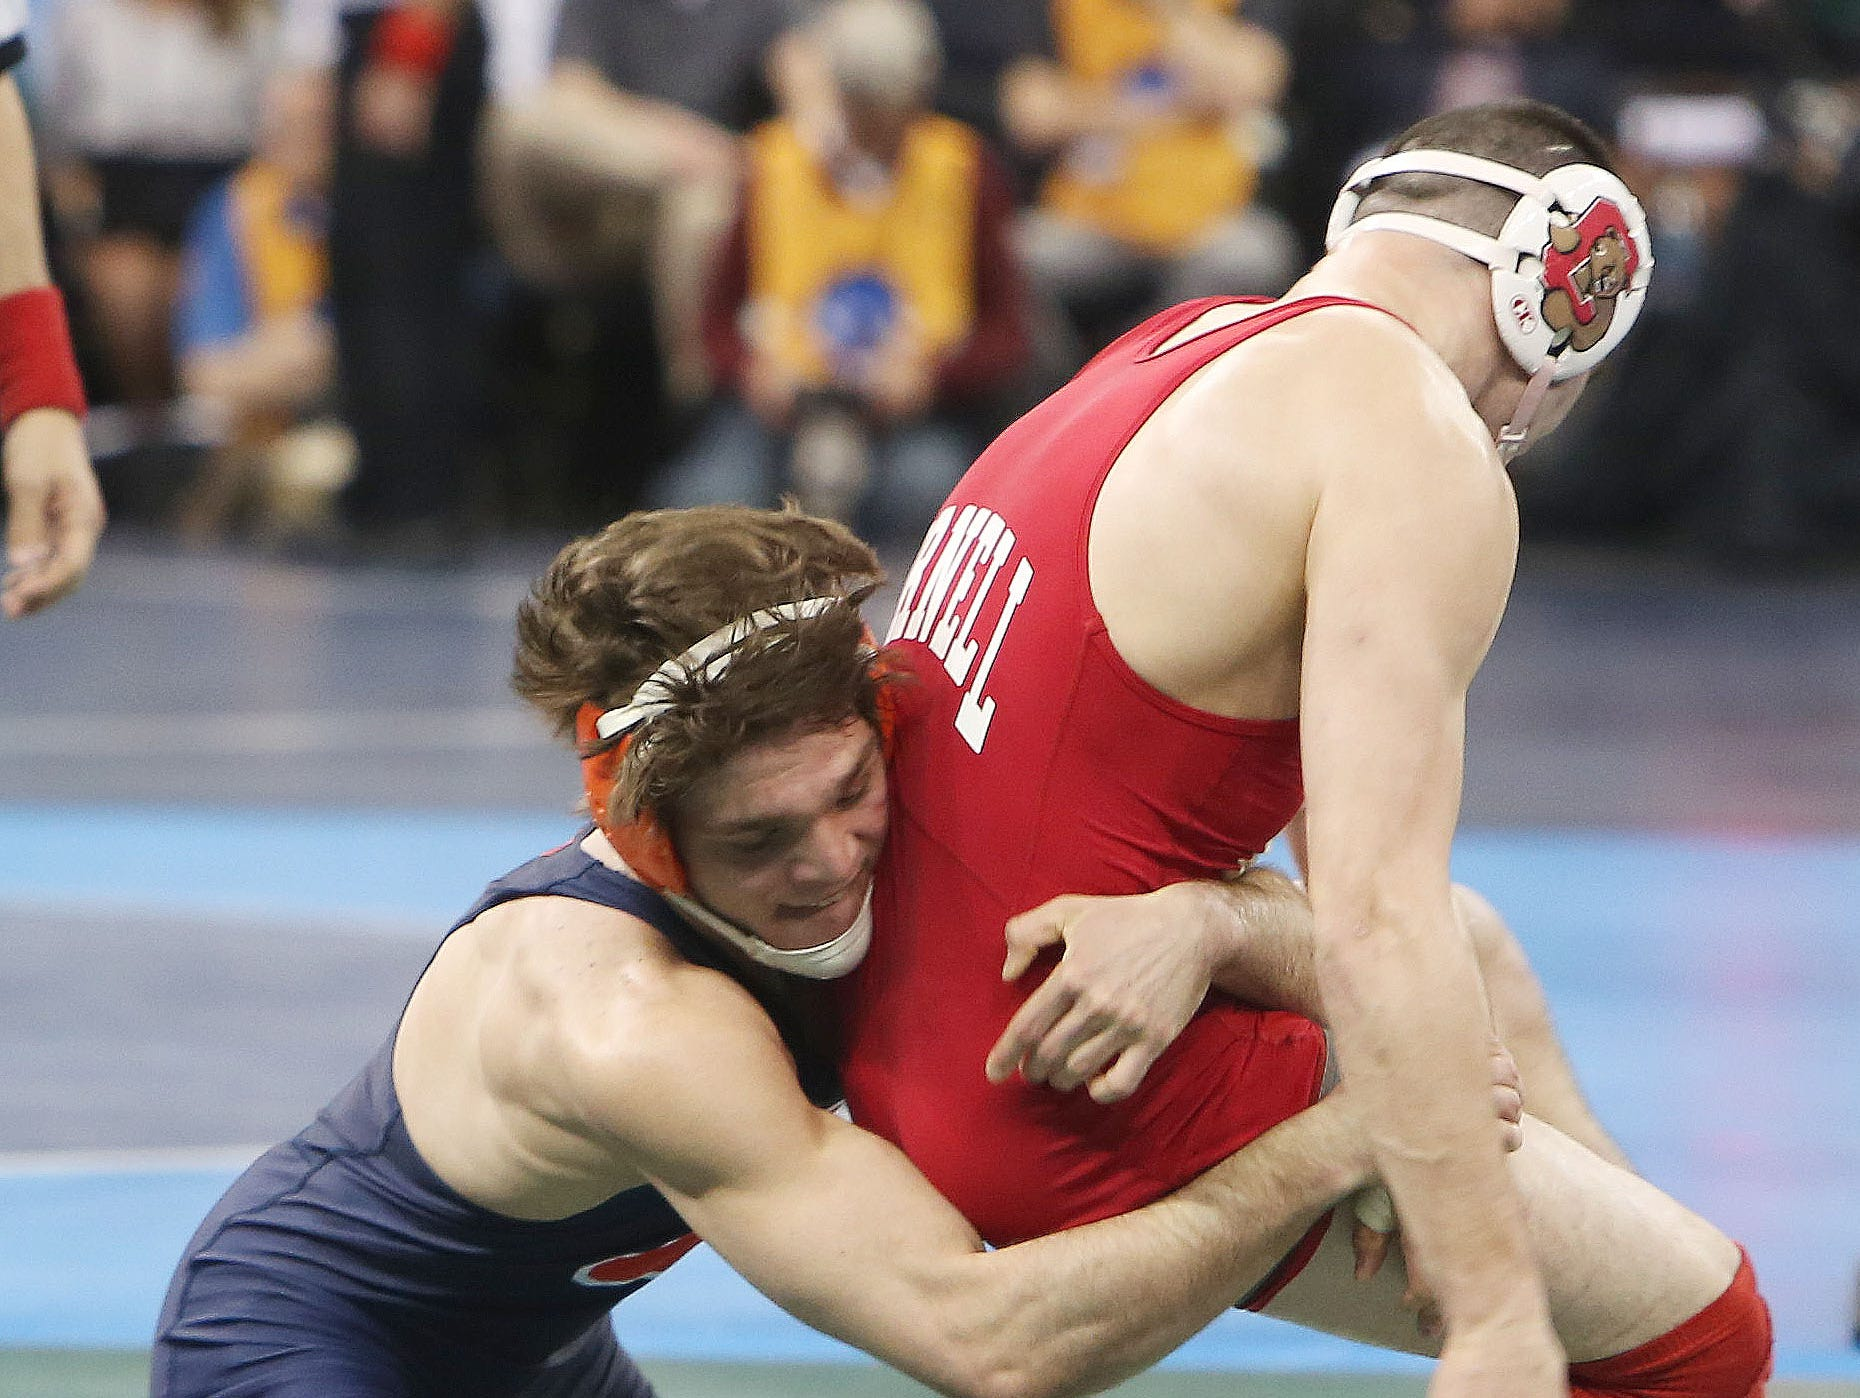 Illinois' Steven Rodrigues, left, beat Cornell's George Pickett in the quarterfinals of the 165-pound weight class during the NCAA Division I Wrestling Championships at Madison Square Garden on Thursday. Rodrigues, a Fox Lane graduate, won the match.